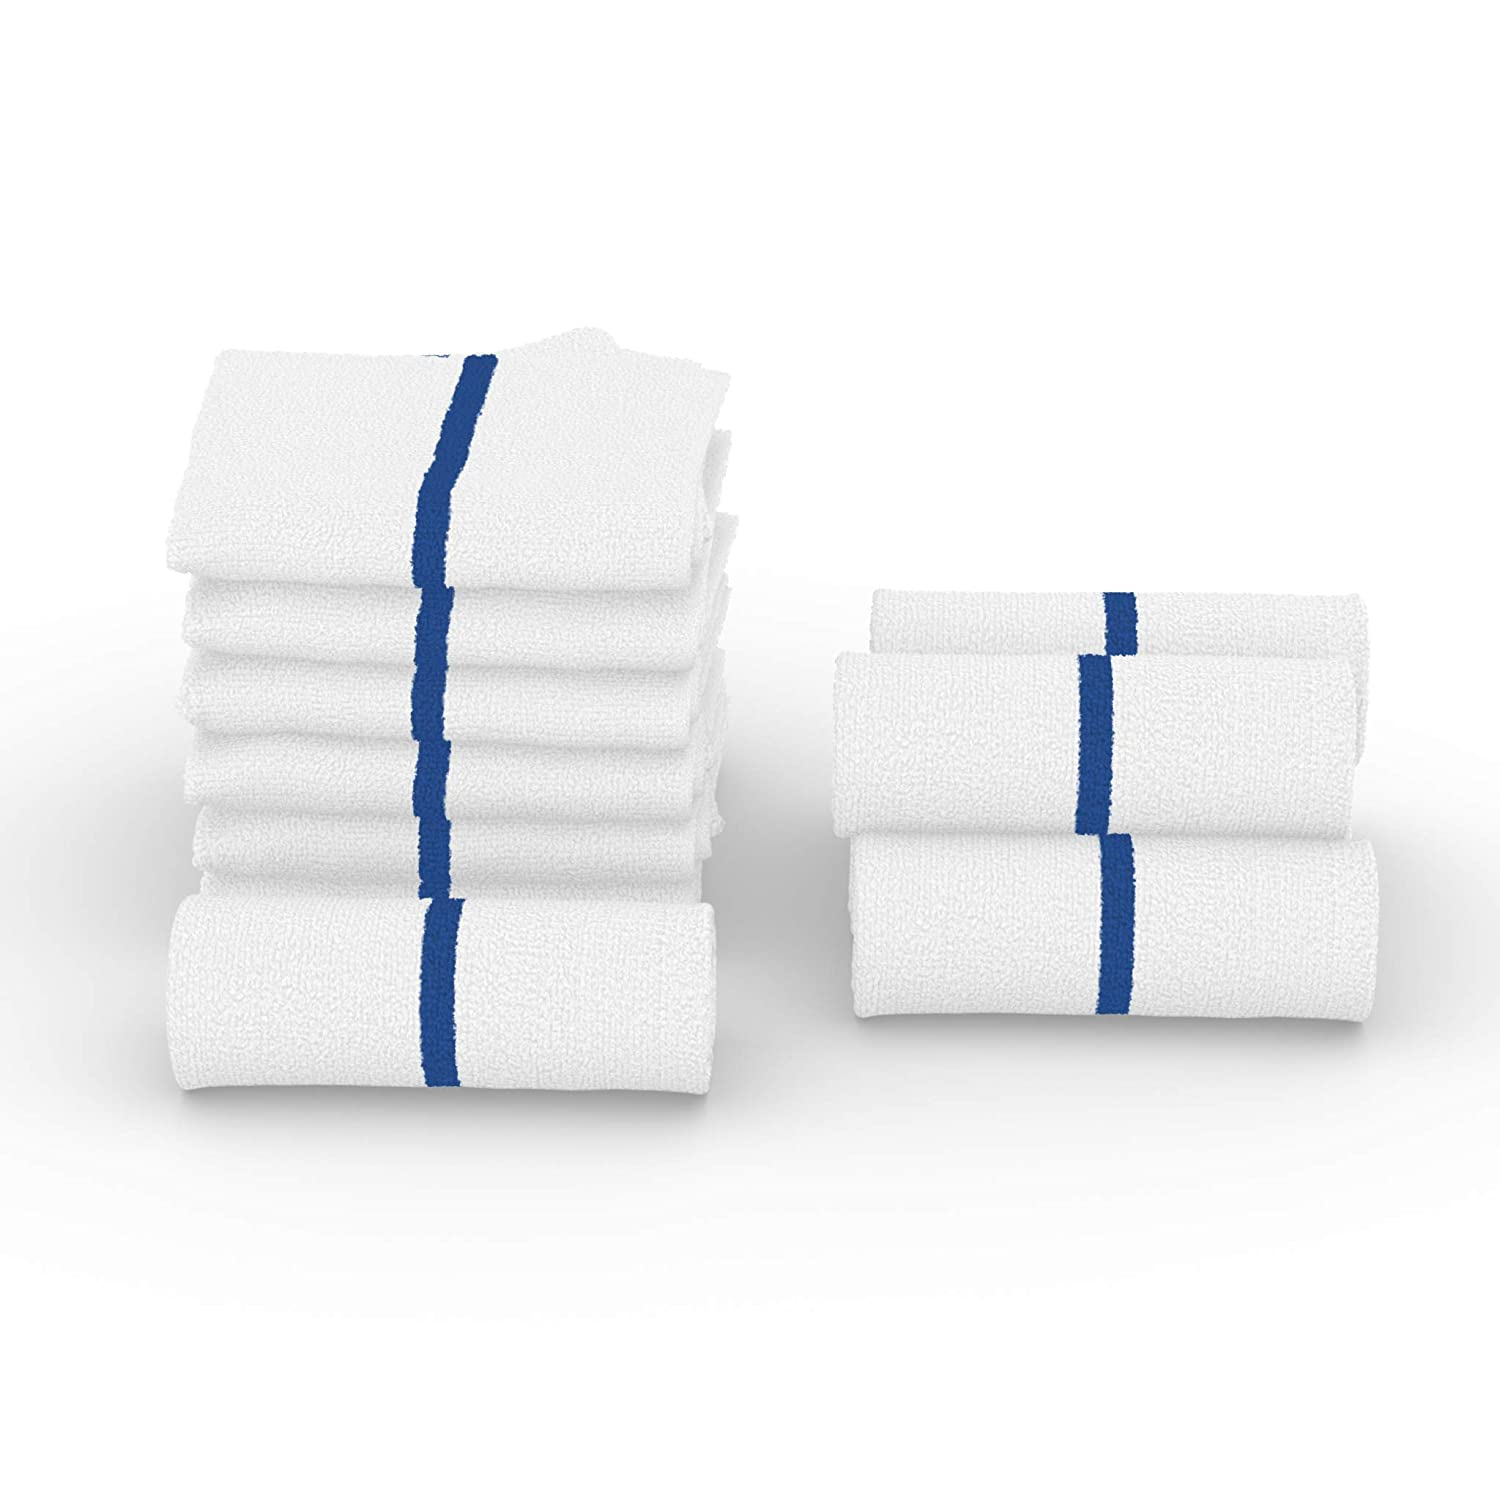 Quick Dry for Gym Kitchen Automotive Use Tidying Cloths 16x19, Blue Stripe 12 or 24 Pack JMR Cleaning Bar Mops